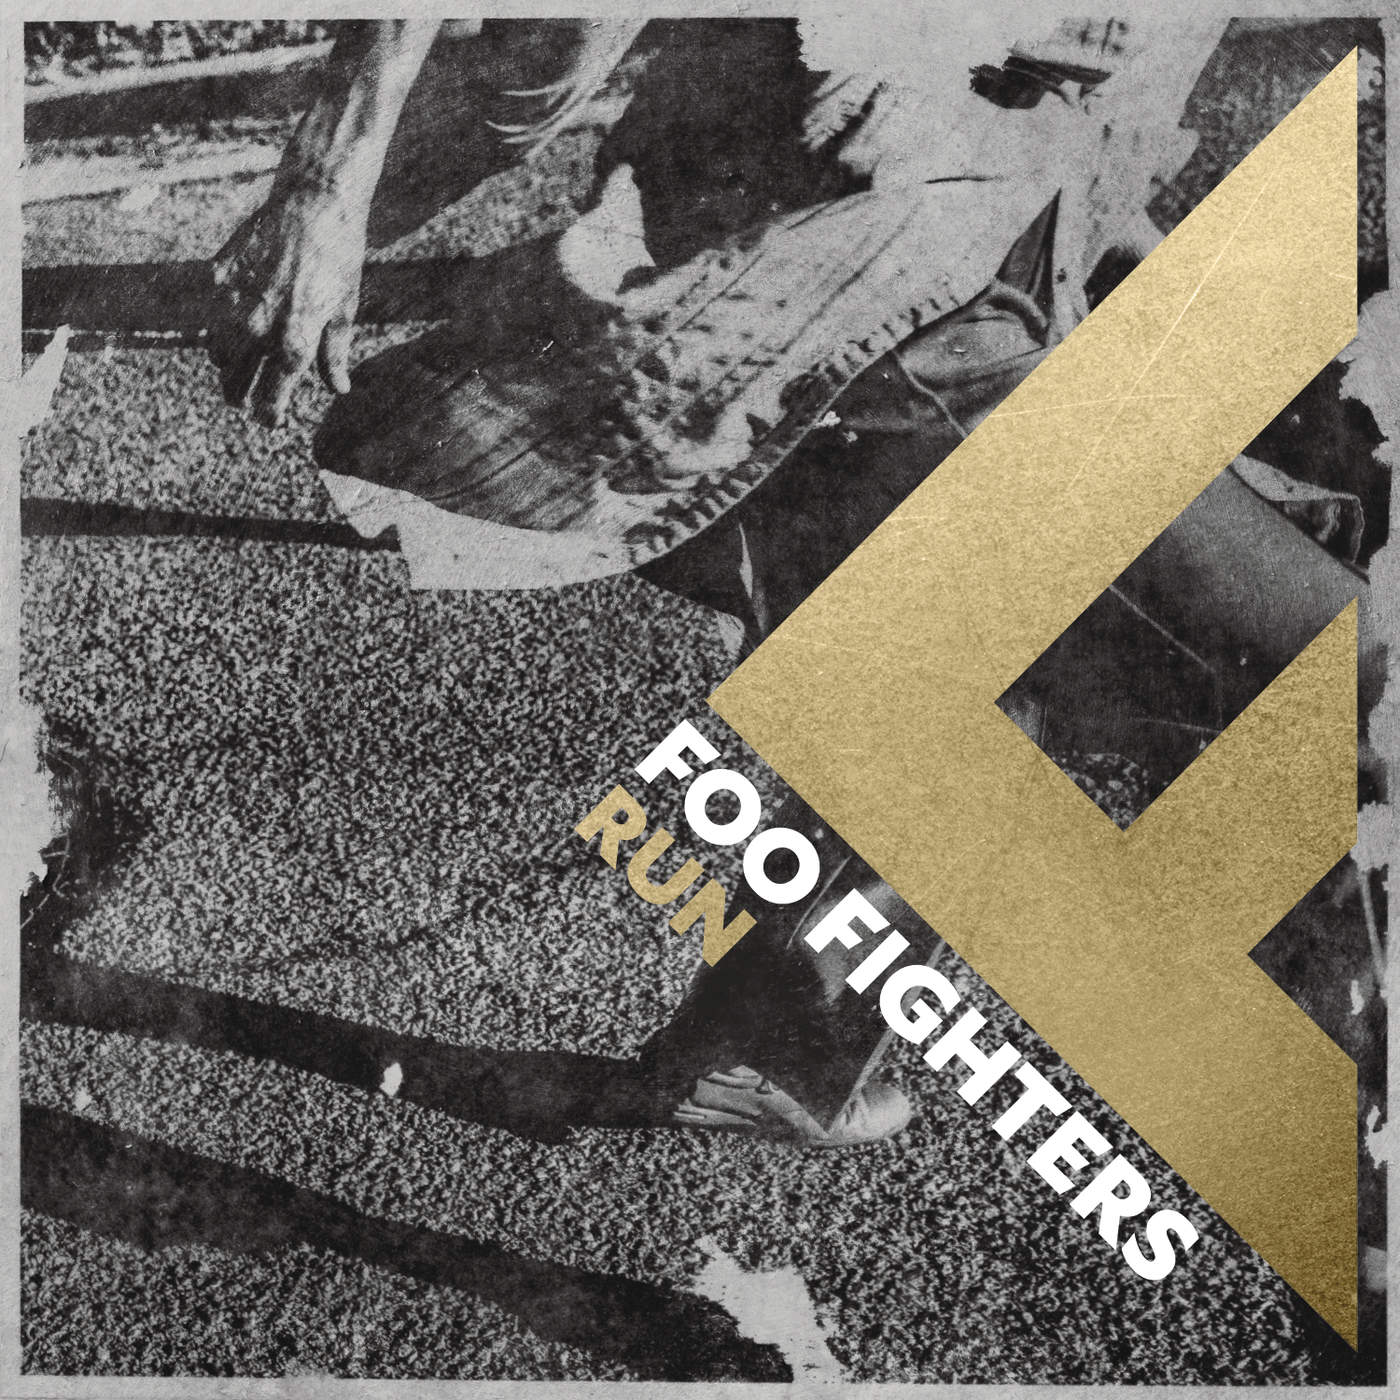 Foo Fighters - Run - Single Cover